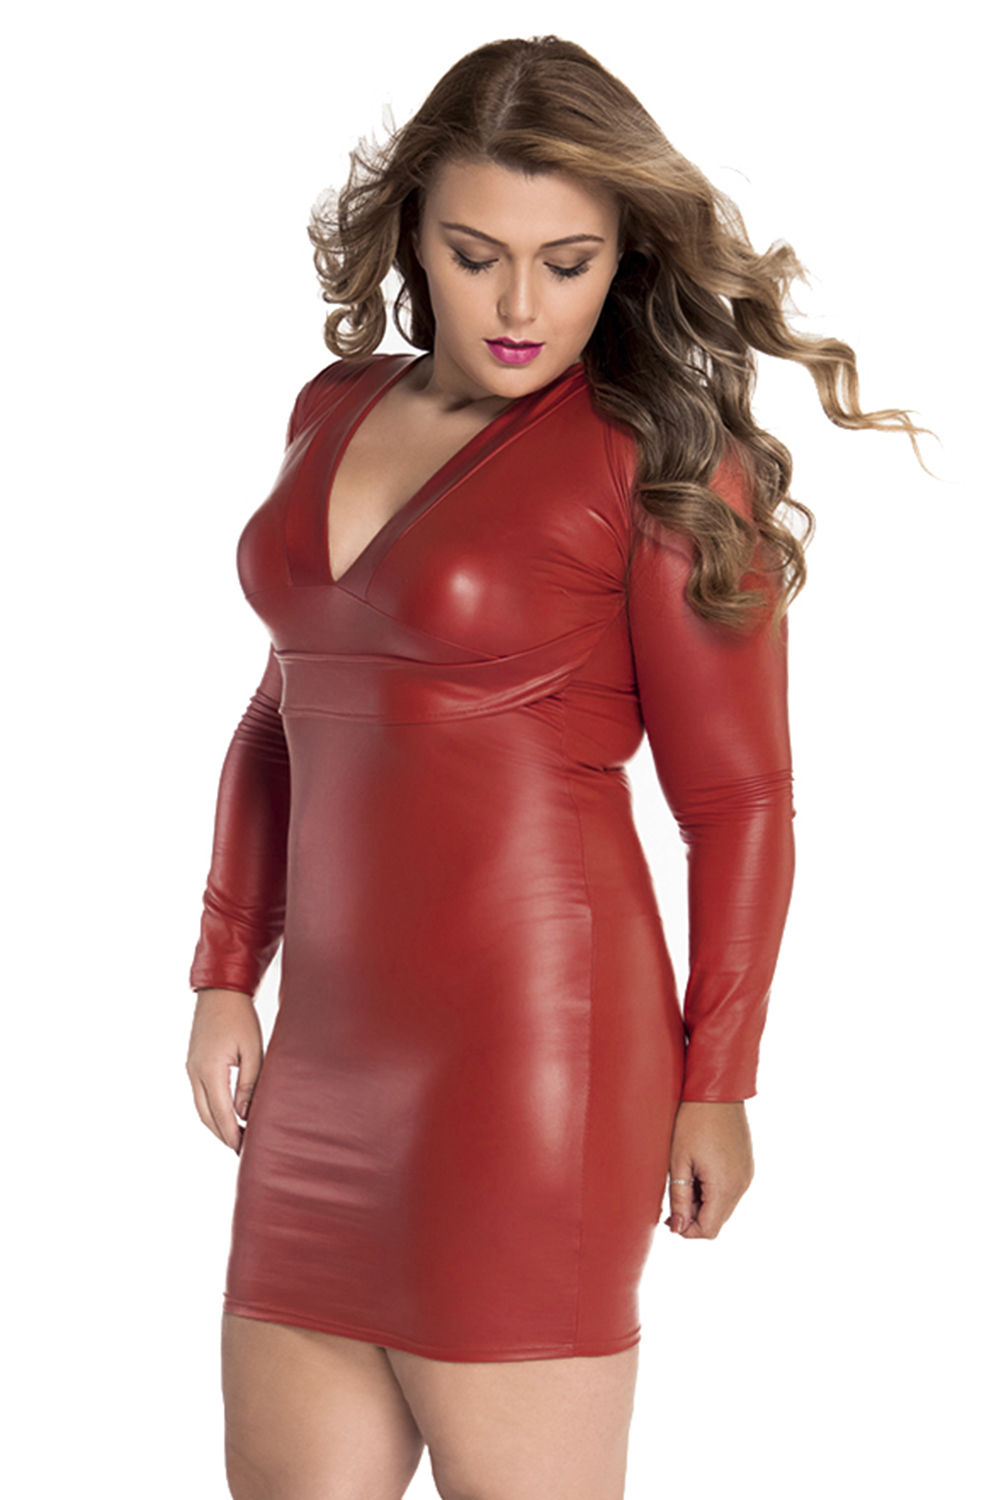 Women Red Plunging Long-sleeve Leather Dress Casual Brief